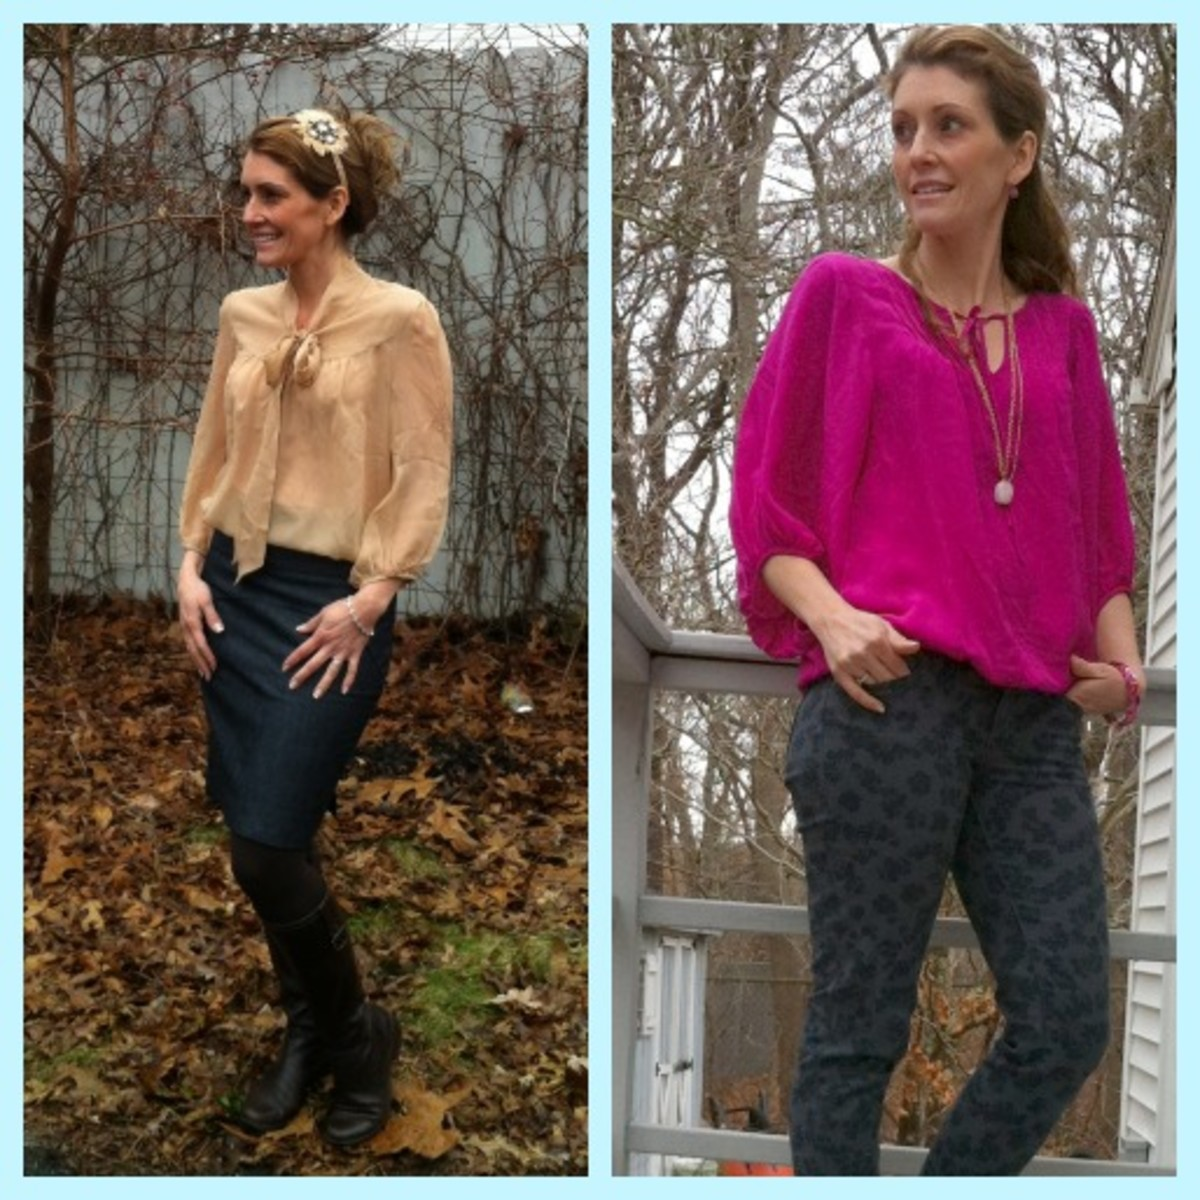 Paired with a slim pencil skirt or floral denim, romantic blouses are versatile and stylish